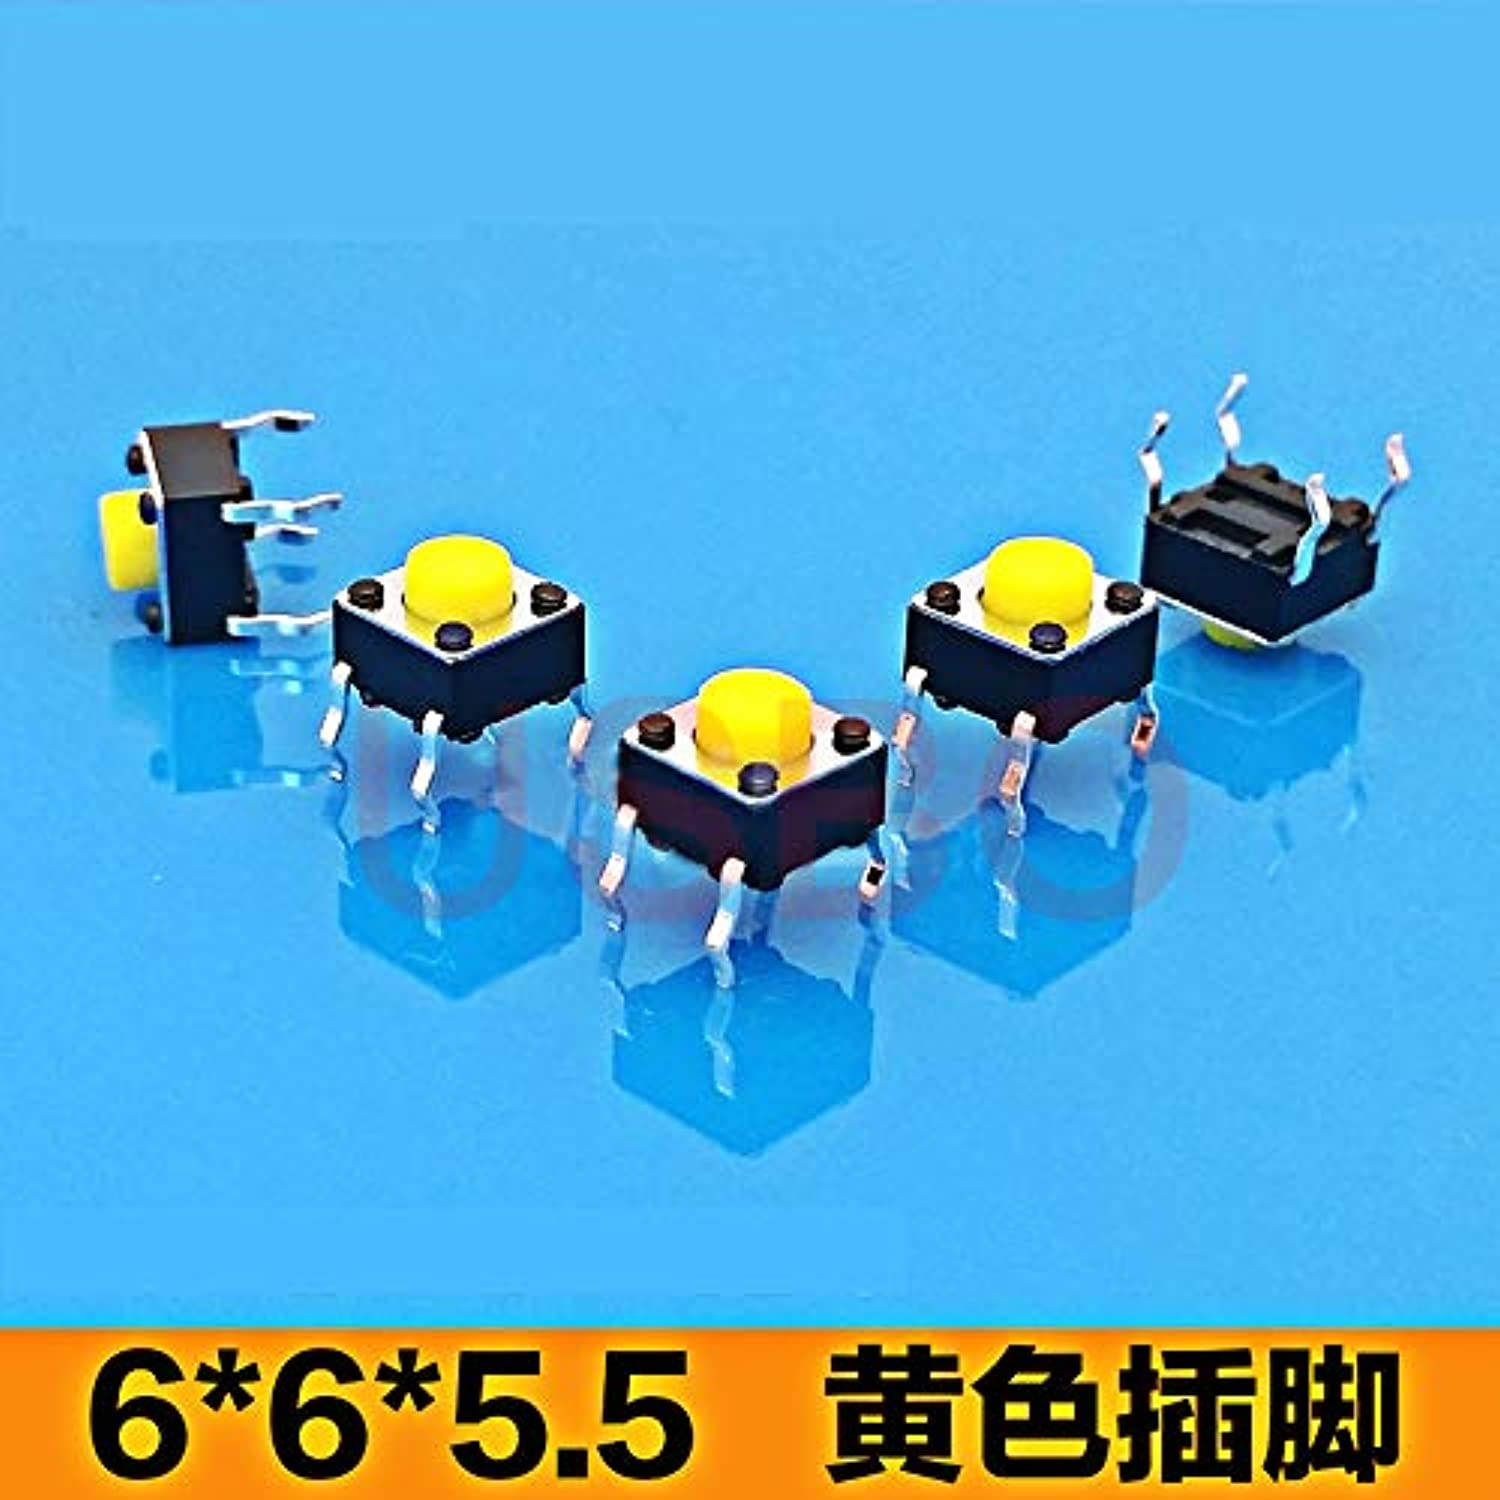 Wholesale Tactile Push Button Switch Tact Touch Switch for Toy 6  6  5.5mm 4 Legs  (color  Yellow)